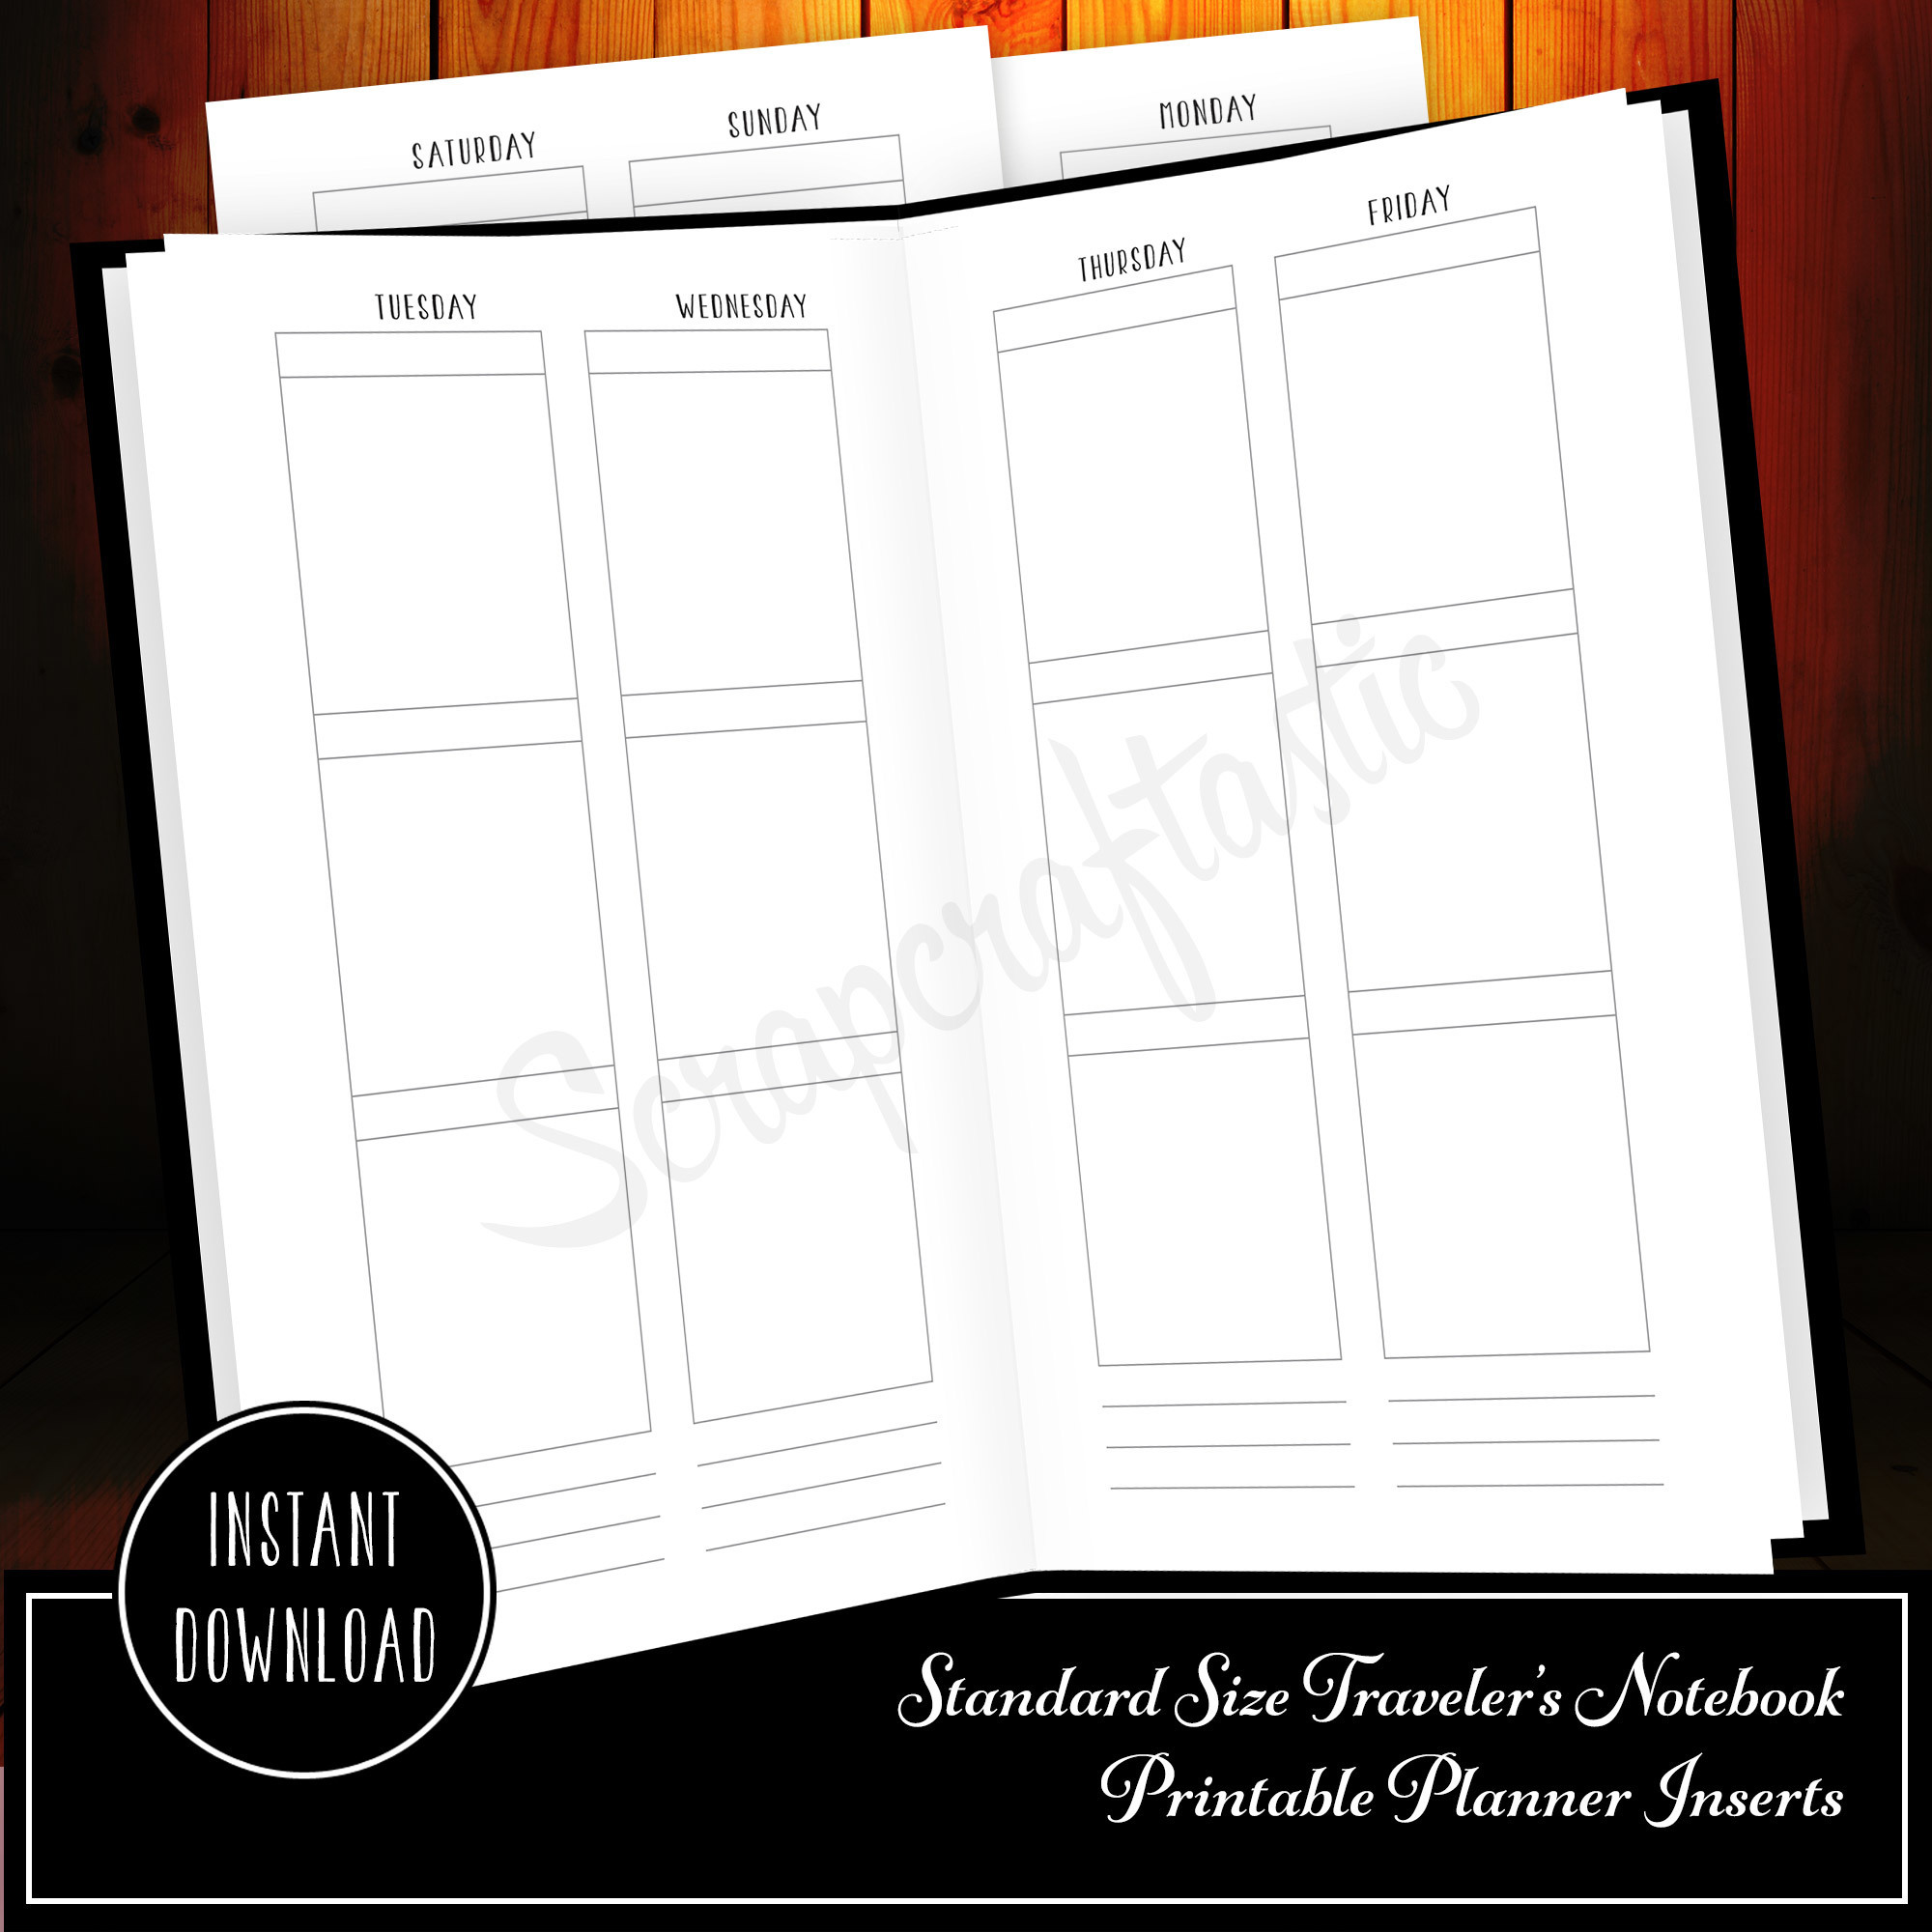 Week On Four Pages (WO4P) Standard Traveler's Notebook Printable Inserts 30005